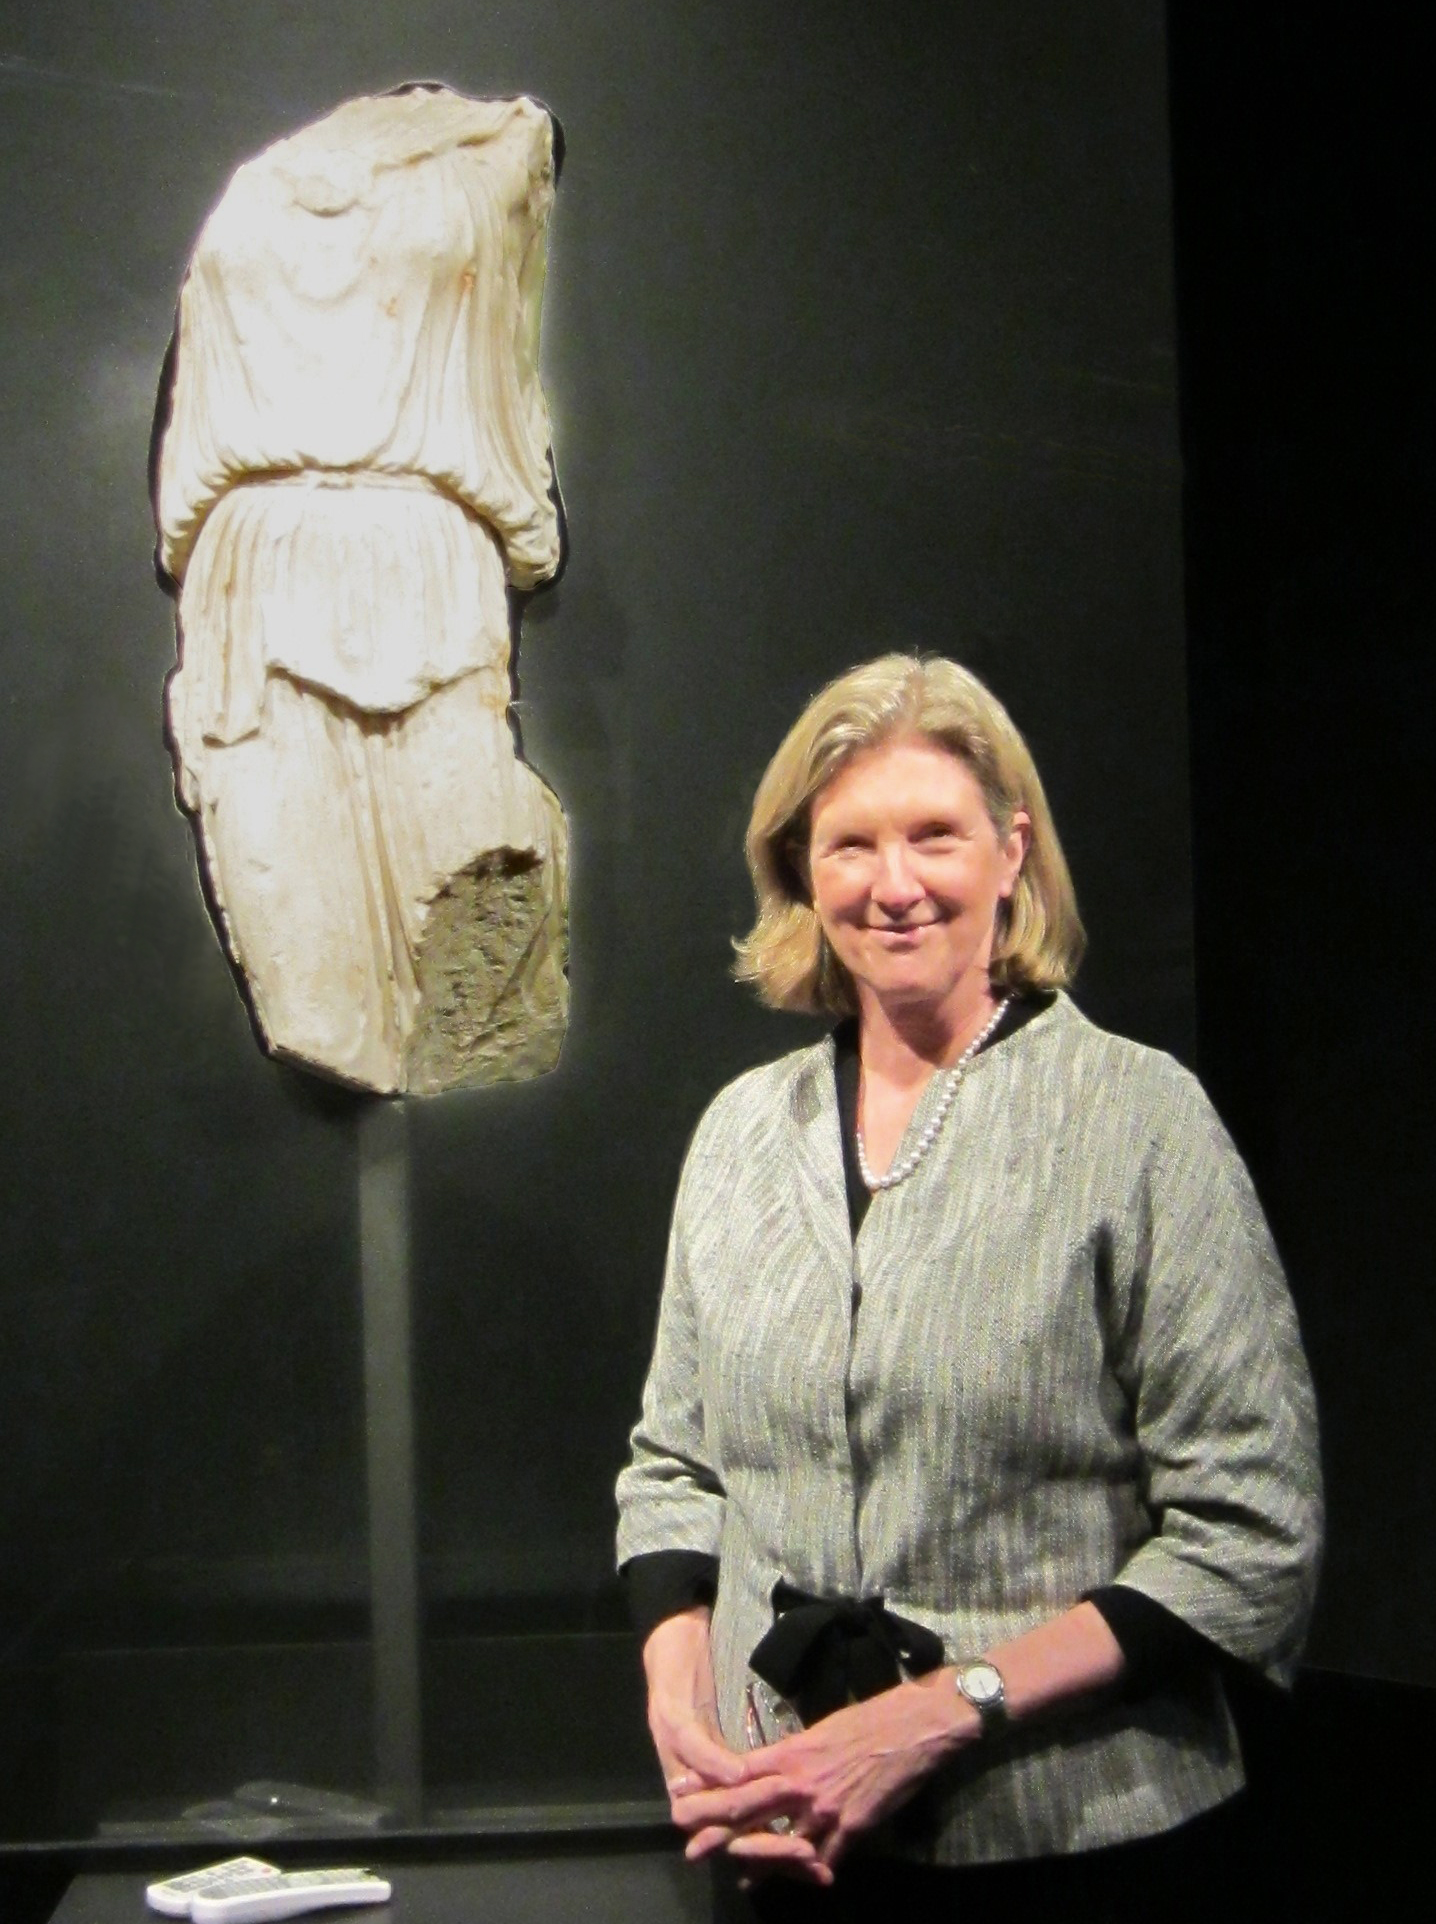 Figure 1: The author, Dr. Irene Bald Romano, with the Sorgente Athena Nike in the exhibition space of the Fondazione Sorgente Group. Photograph by Kenneth Lapatin.